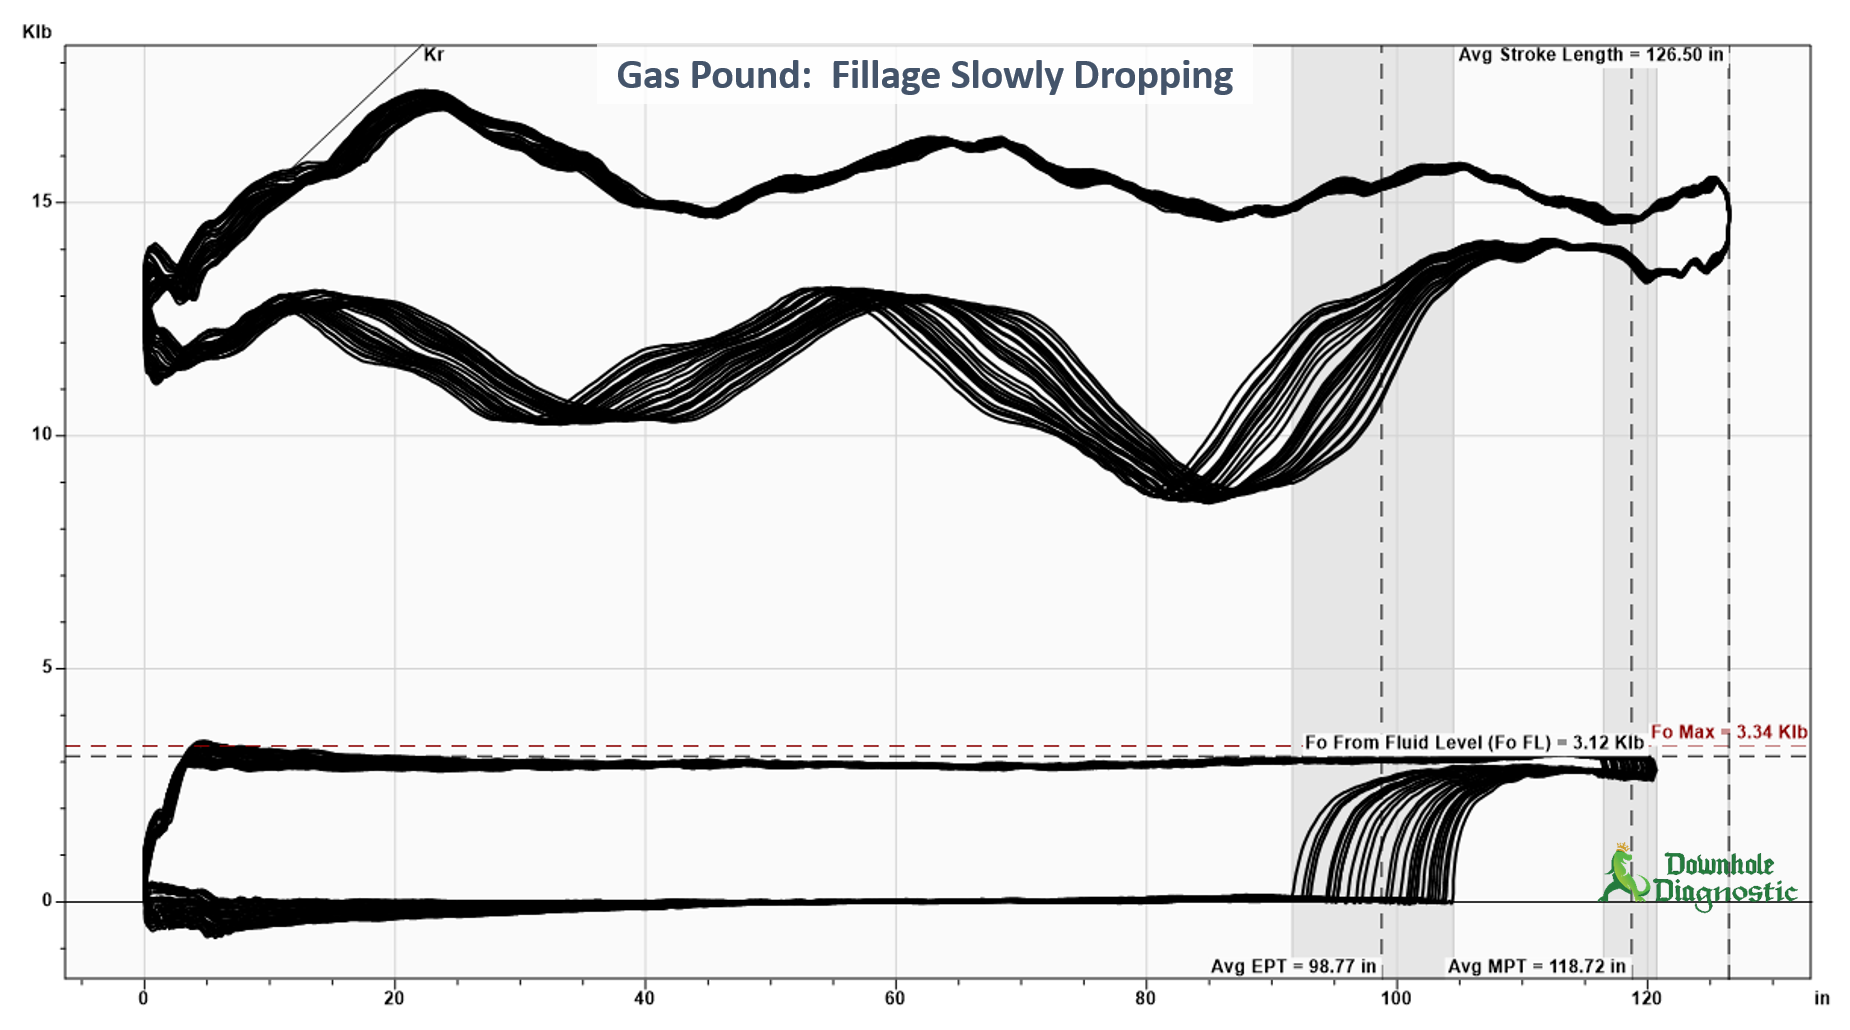 Gas Pound - Fillage Slowly Dropping